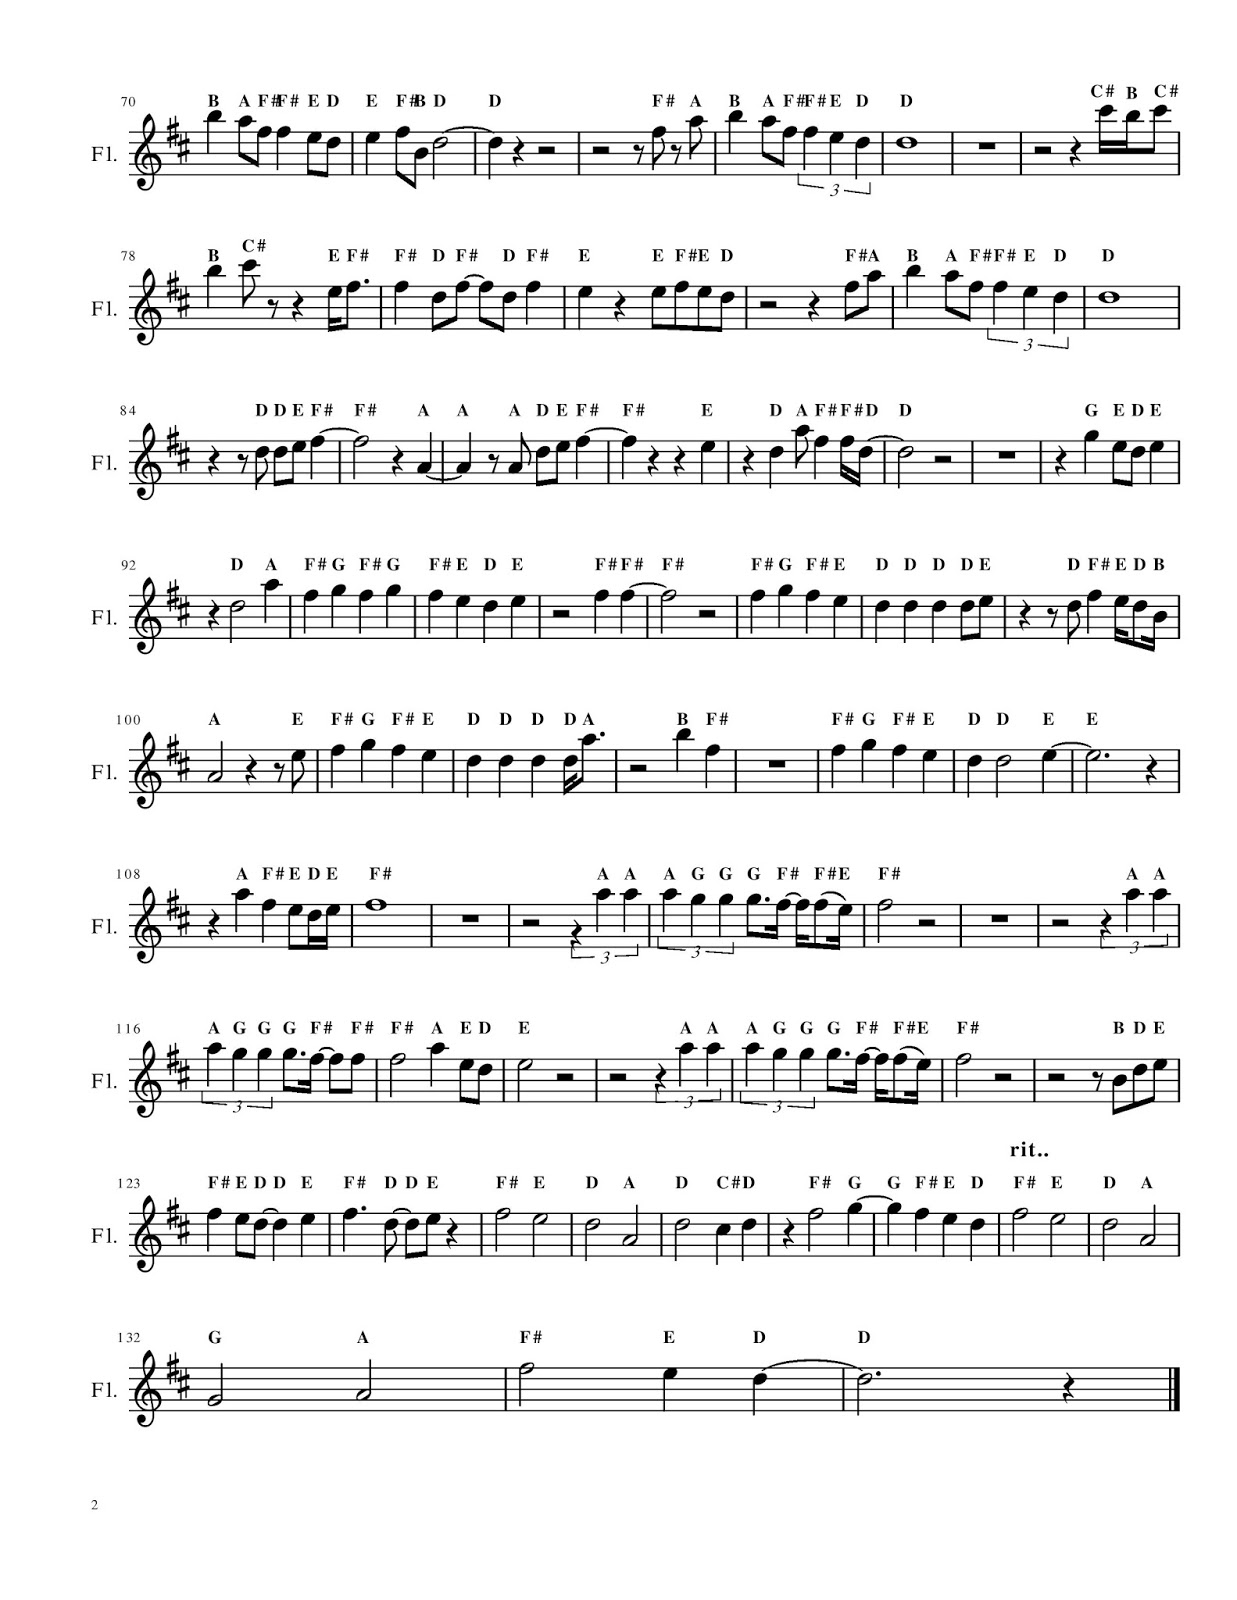 Flute Cafe Thinking Out Loud By Ed Sheeran Flute Sheet Music